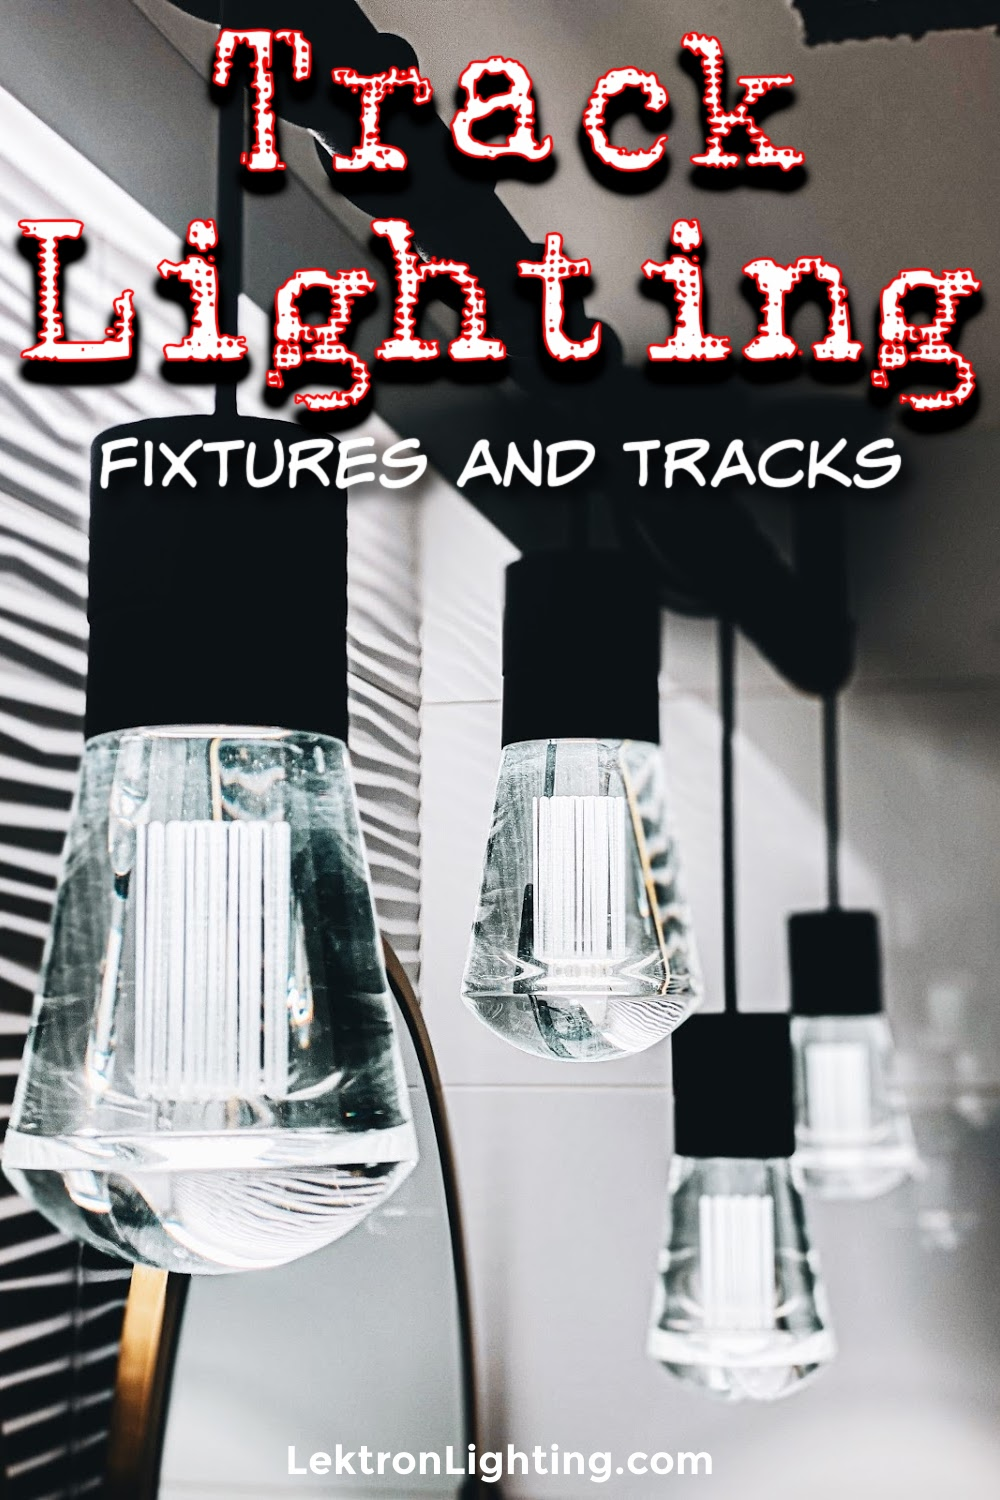 It is important to know what type of LED track lighting fixtures can be used before deciding against using track lighting at all.